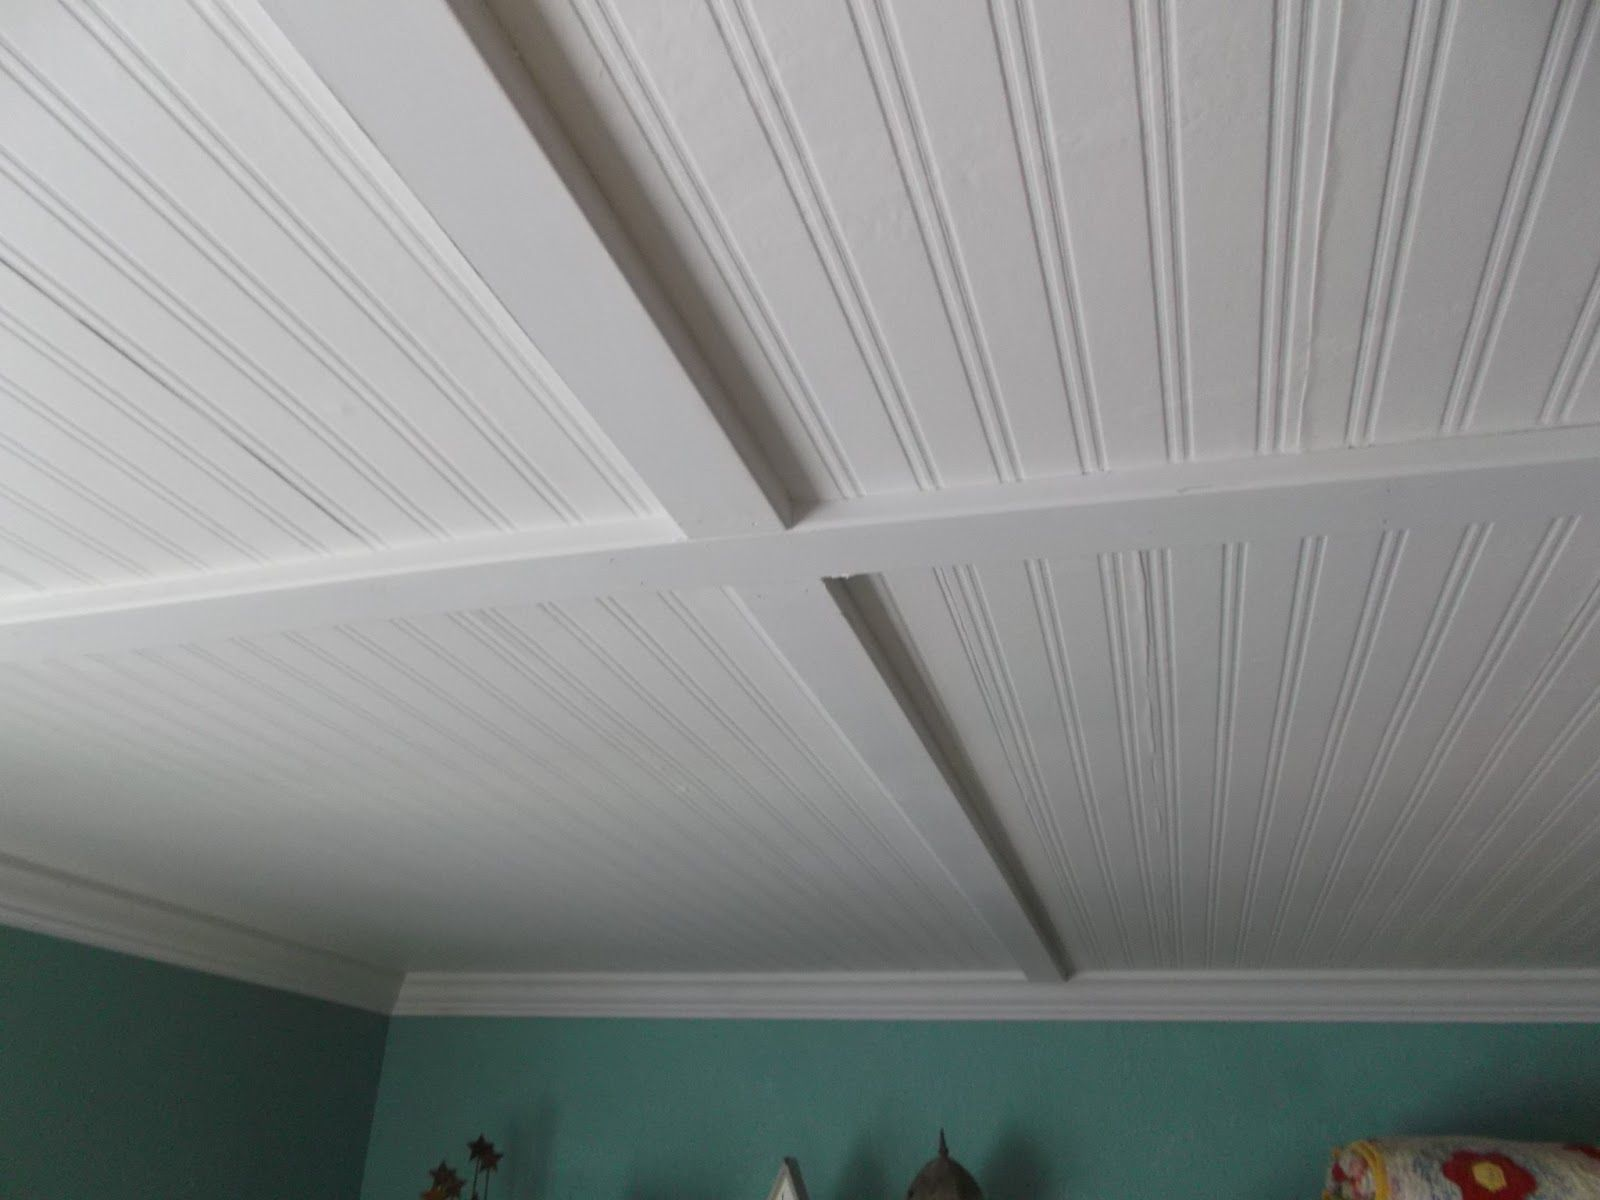 7+ Best Cheap Basement Ceiling Ideas in 2018 [No. 5 Very